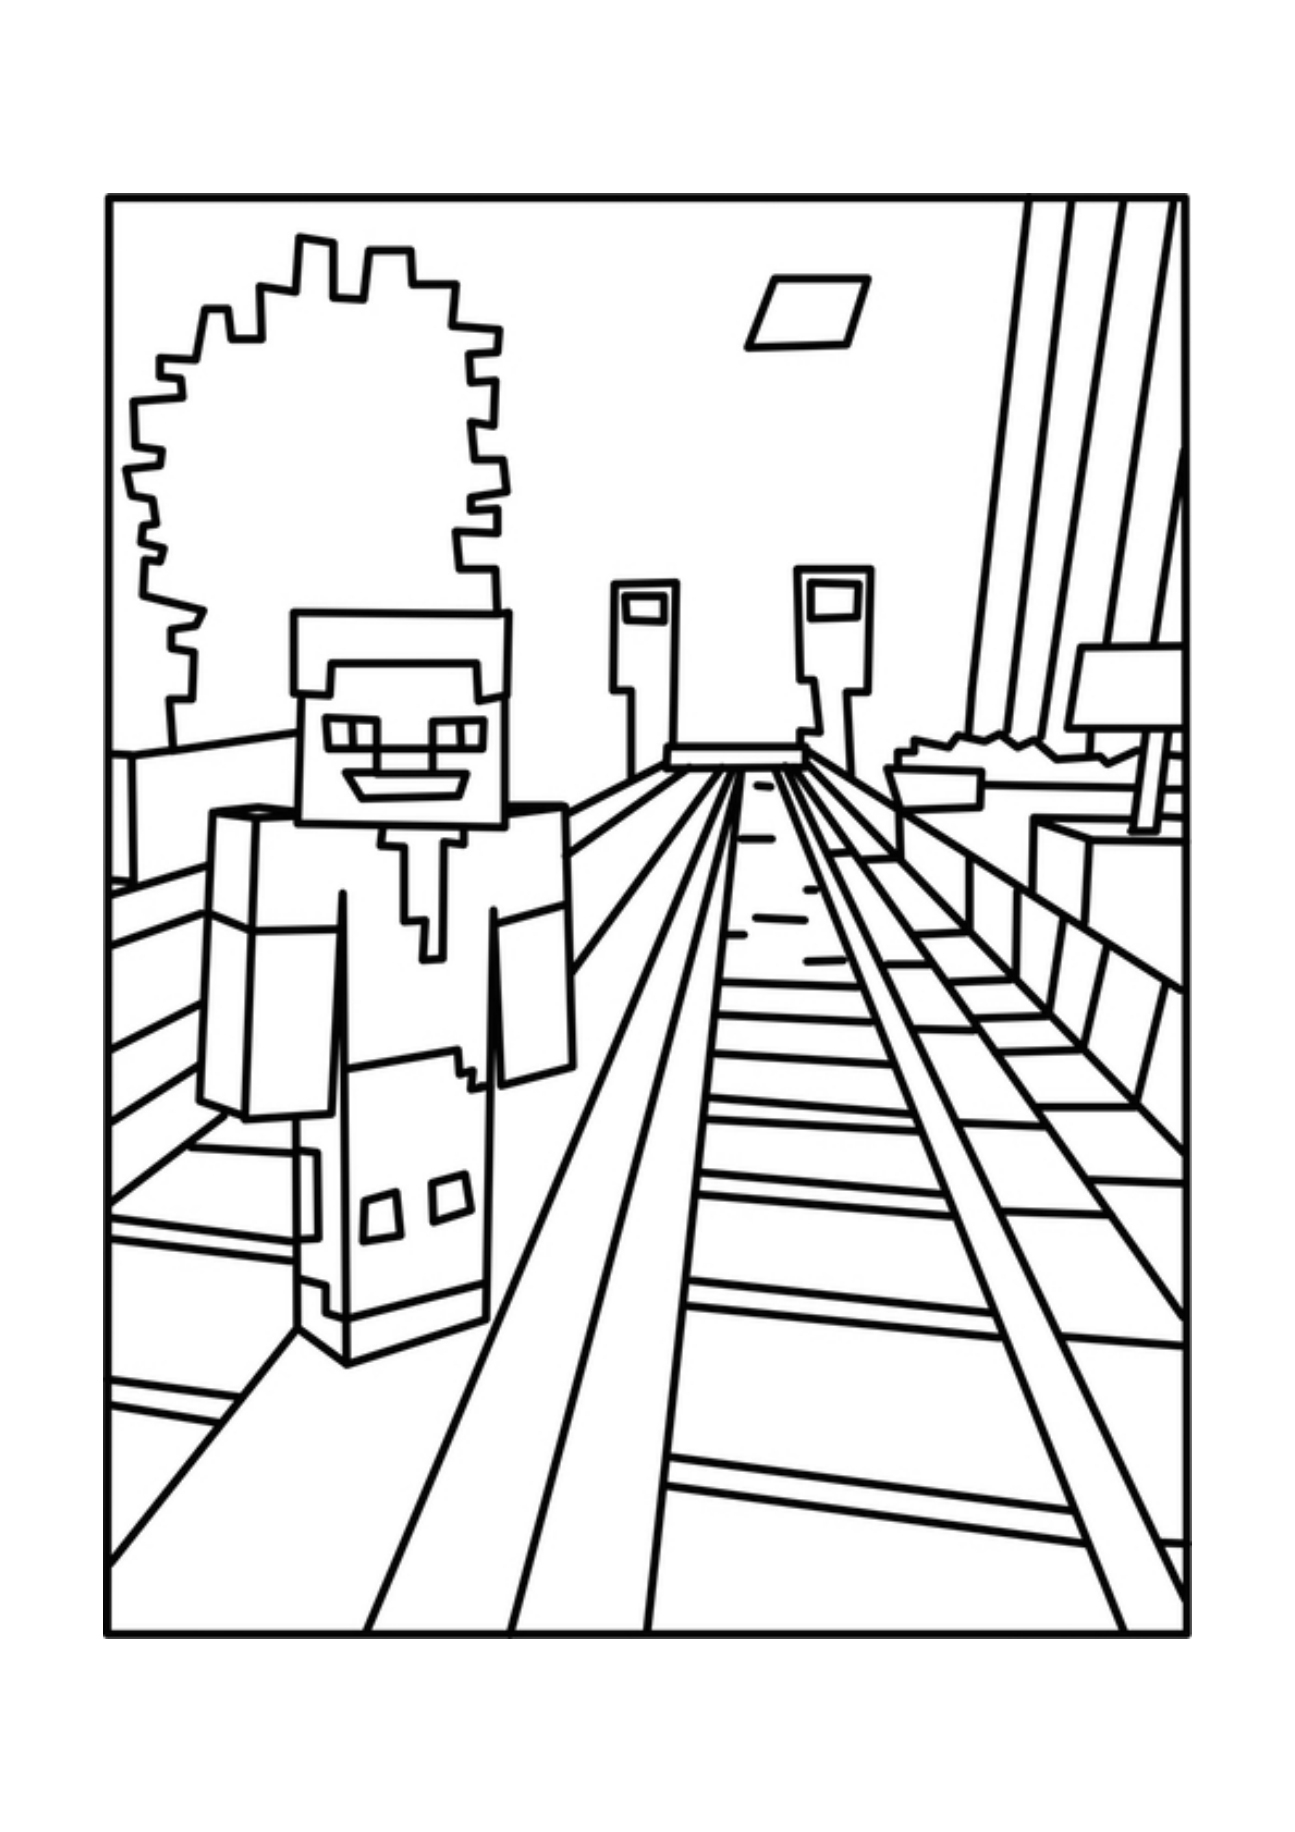 mindcraft coloring sheets minecraft coloring pages free printable coloring pages coloring mindcraft sheets